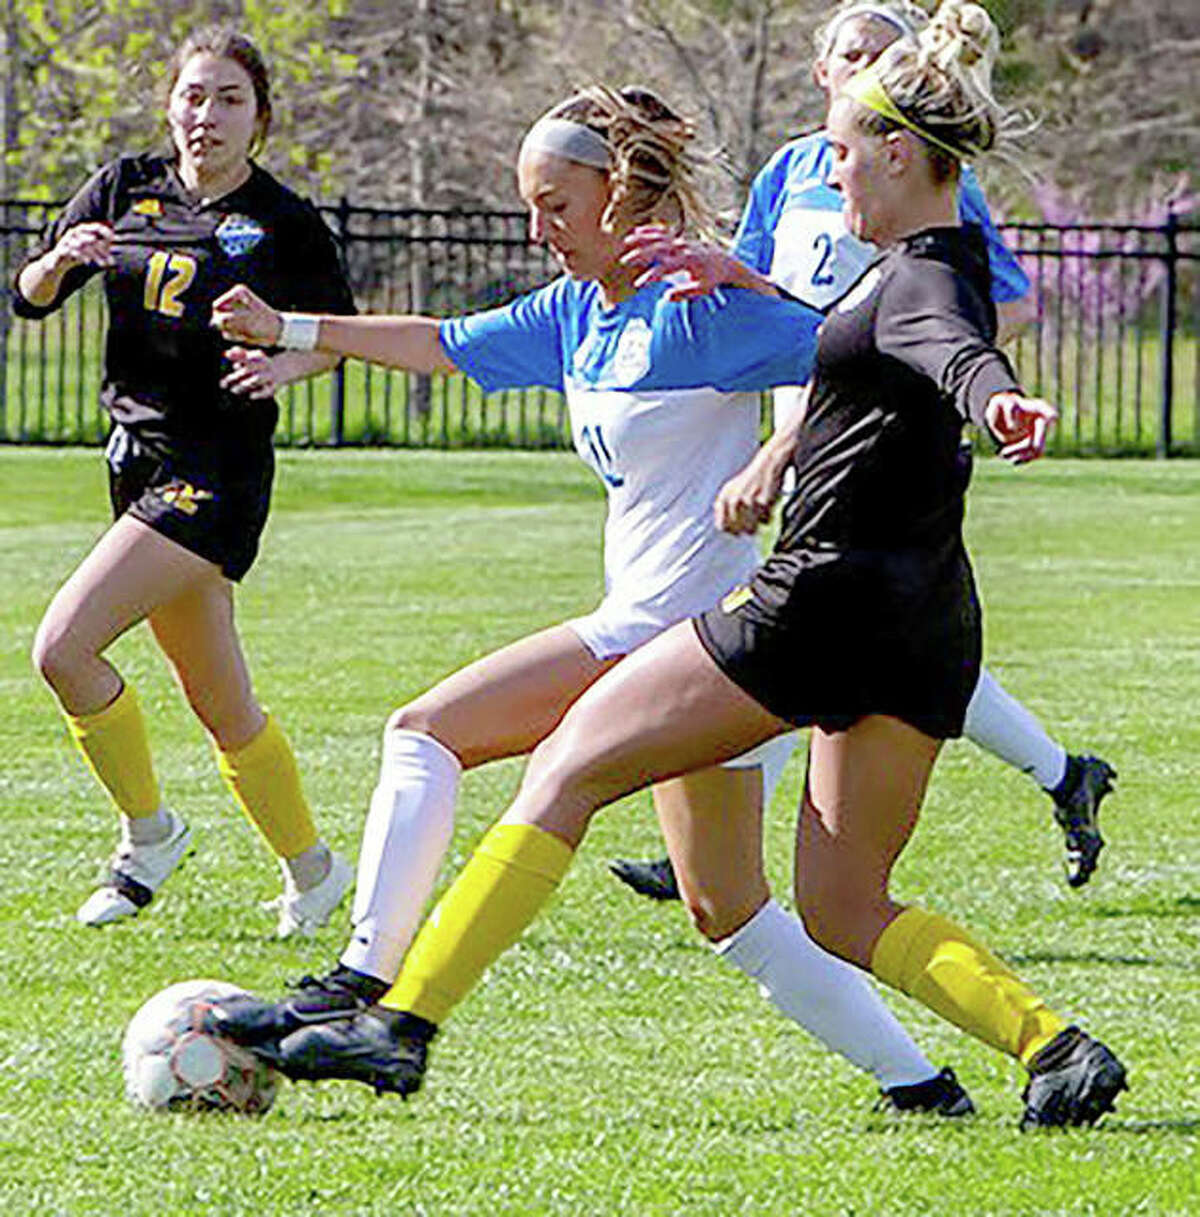 Lewis and Clark's Skylar Nickel, a freshman from Carlinville, controls the ball earlier this season against Illinois Central College.